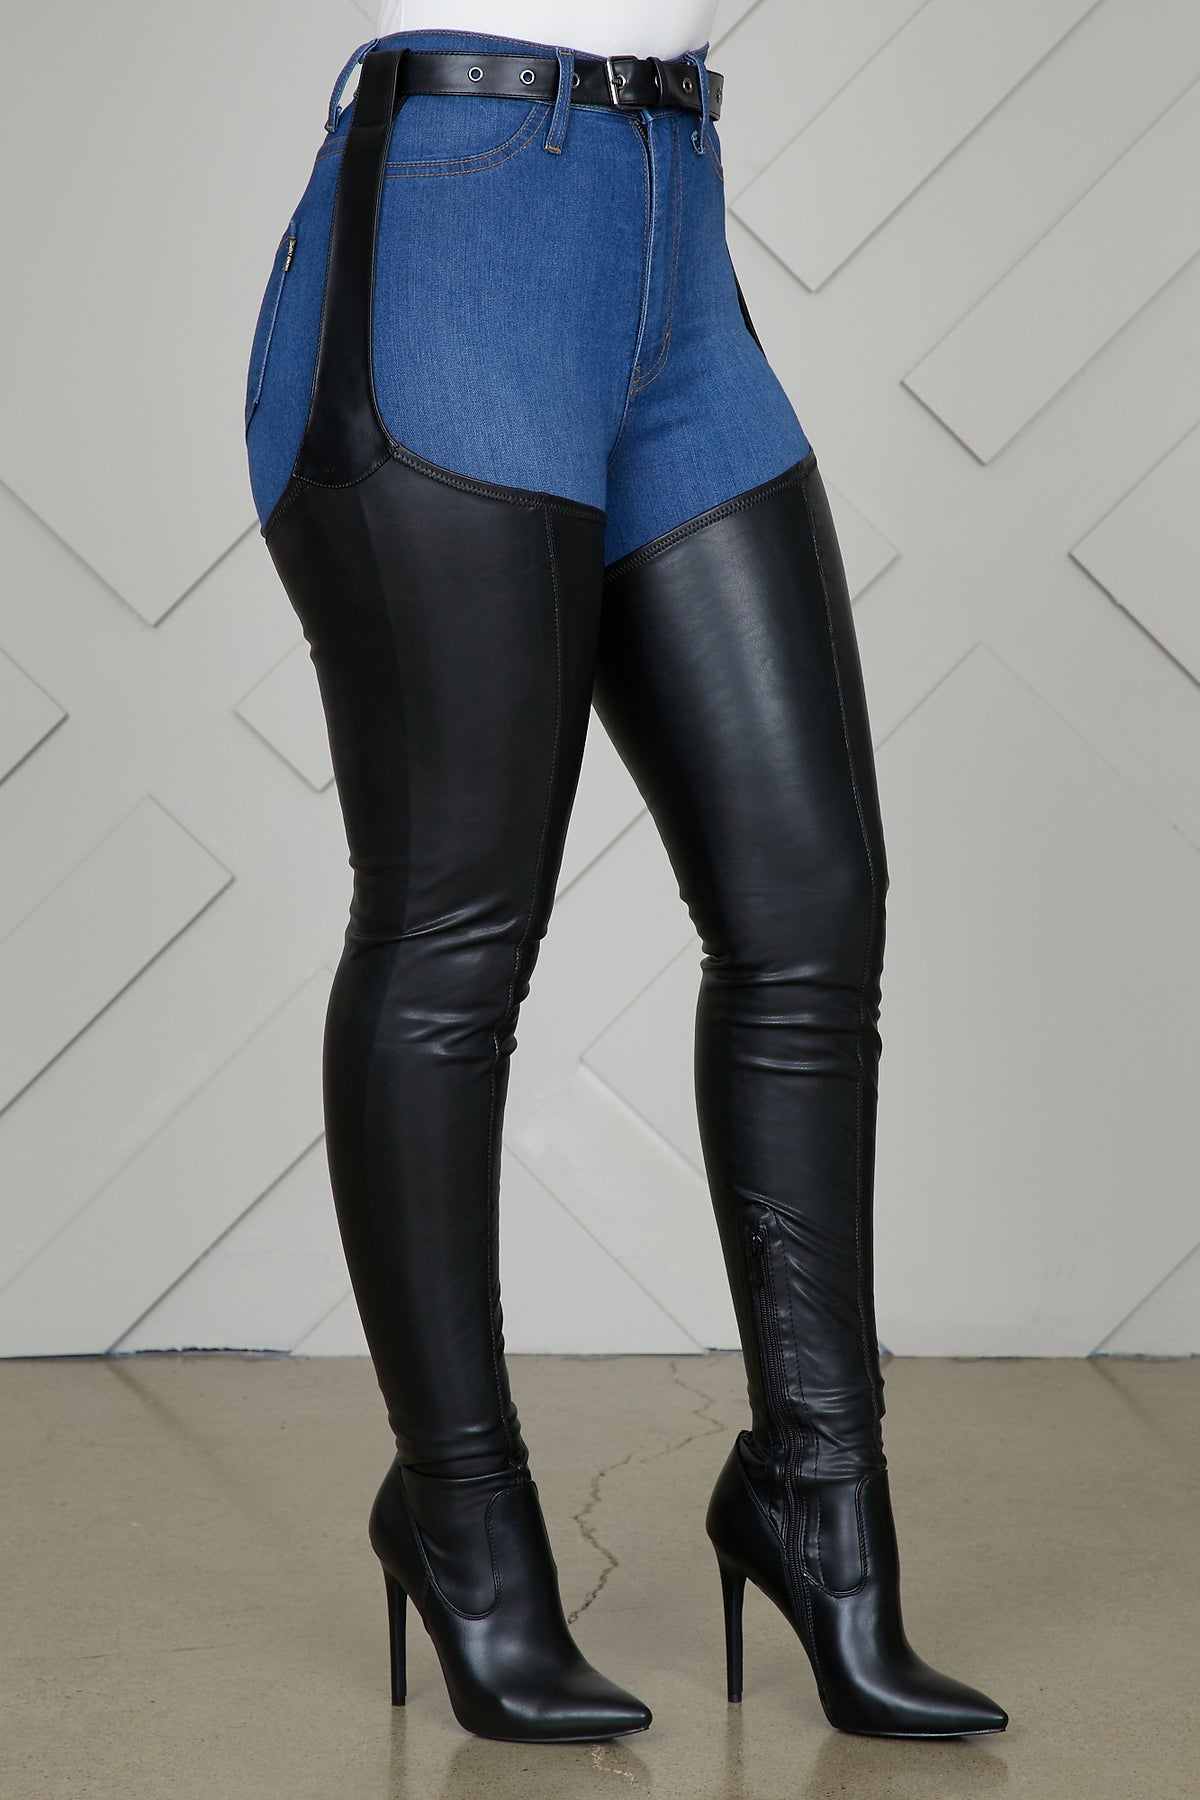 Westloop Thigh High Boots  Preorder Only Ship 12/12 Or Sooner by Lilly's Kloset